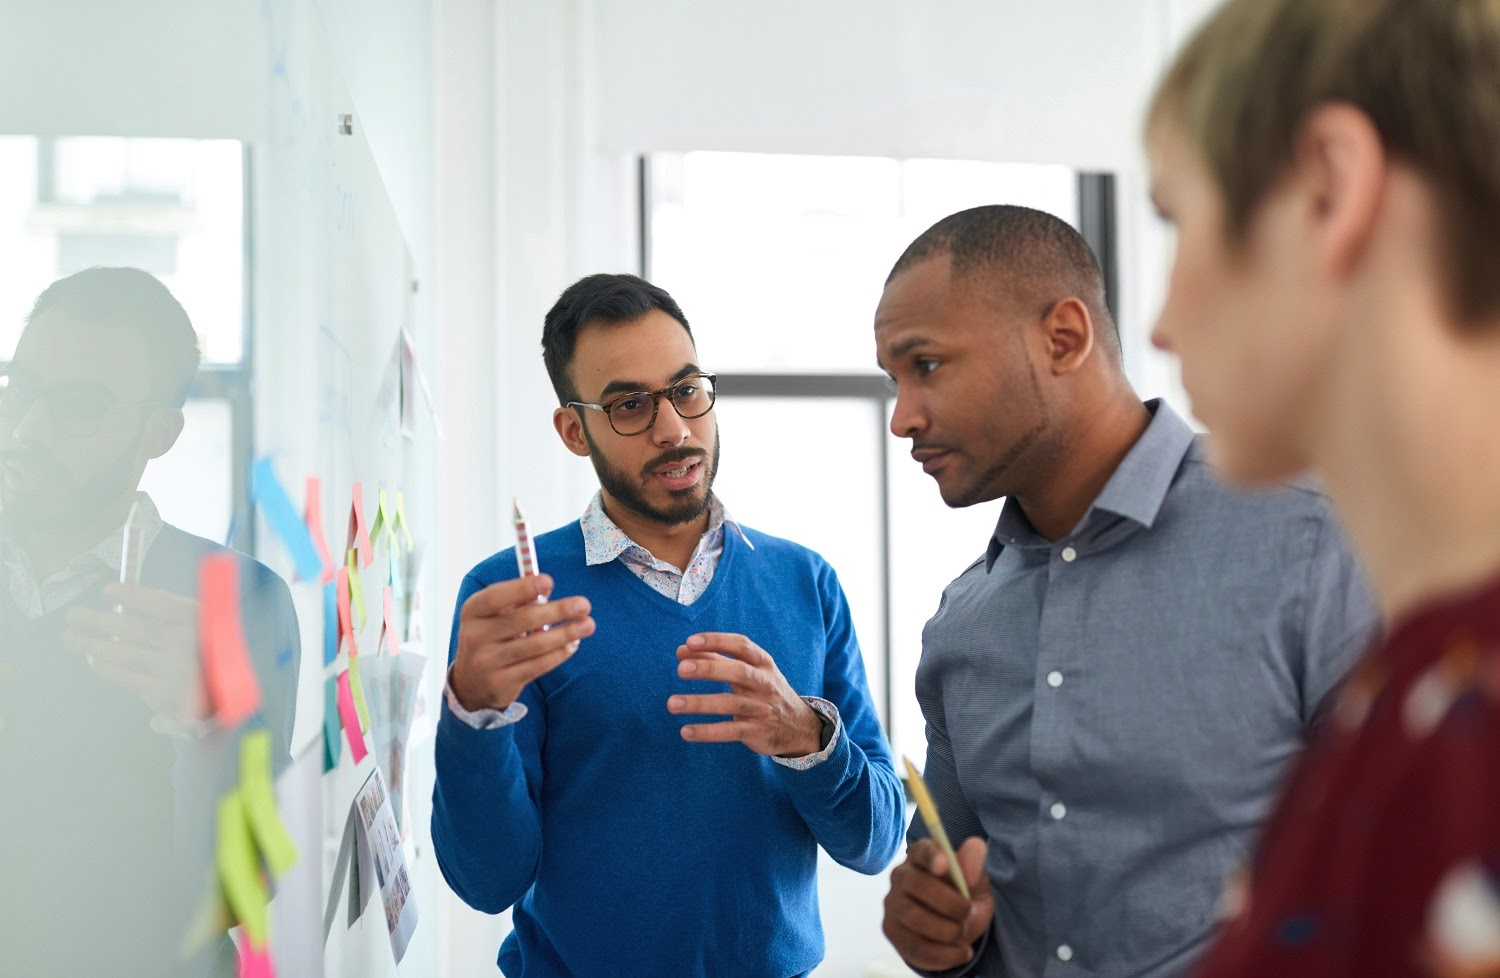 Competency-based interview: Team members brainstorm in front of a white board